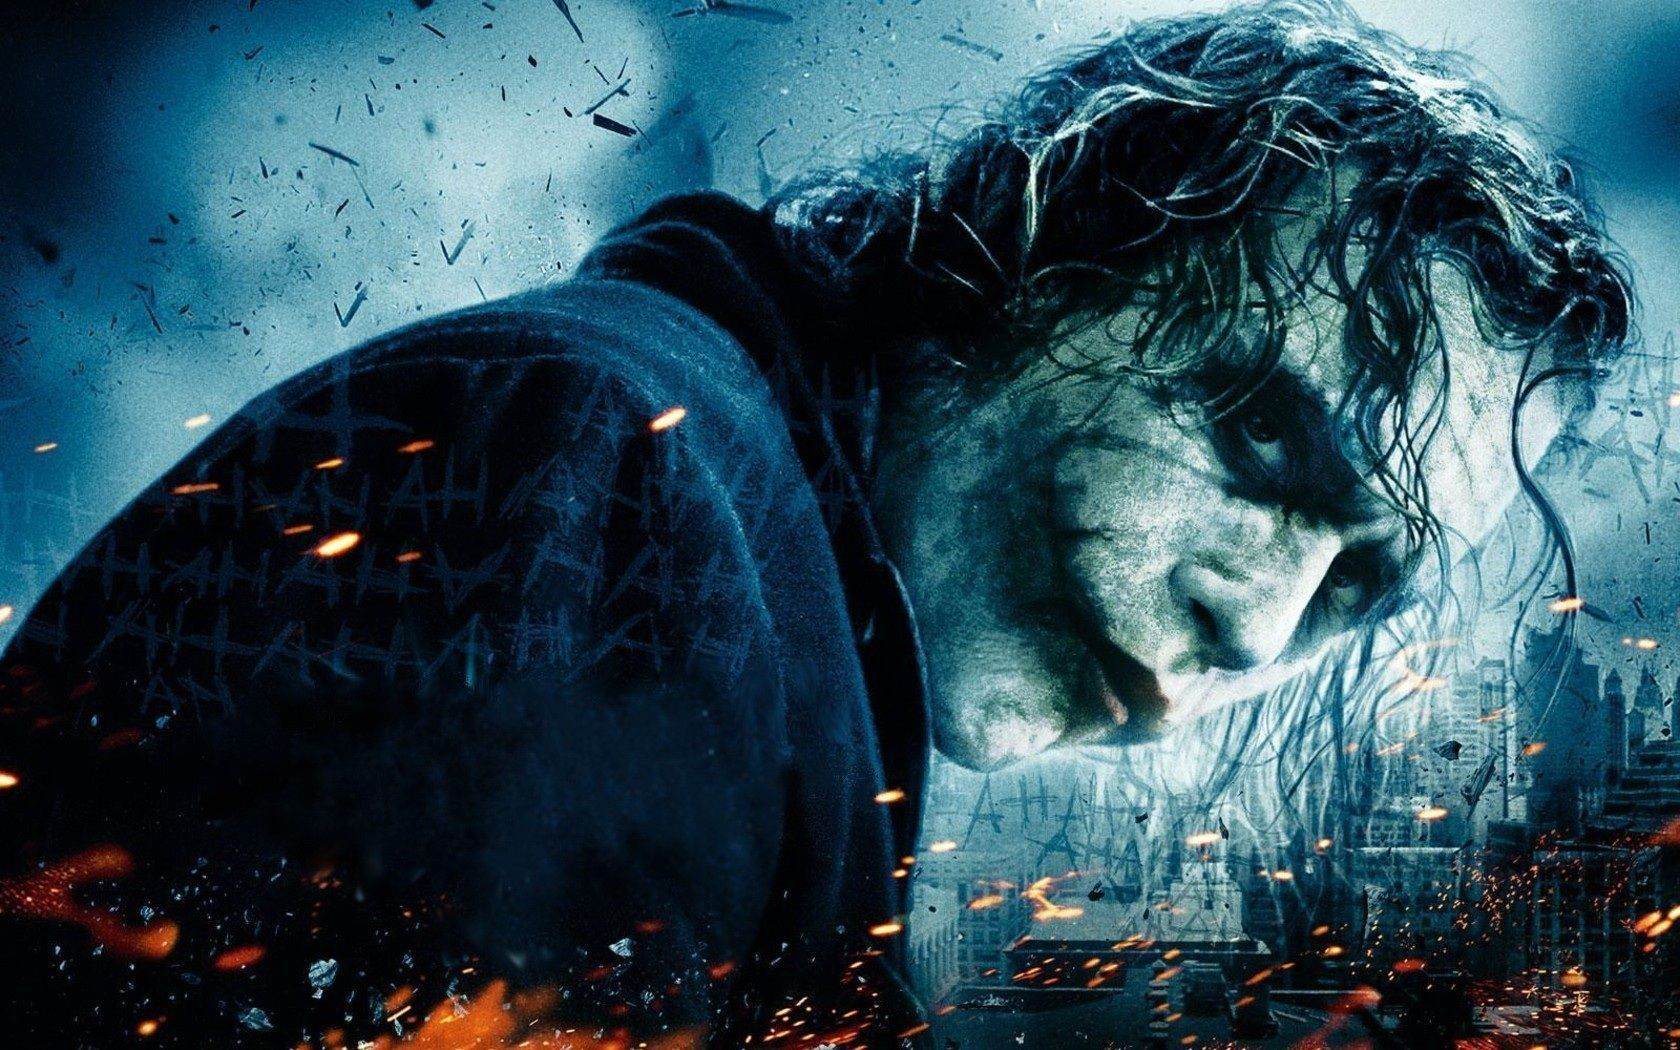 The Dark Knight Rises Hd Wallpapers And Desktop Backgrounds 1680x1050